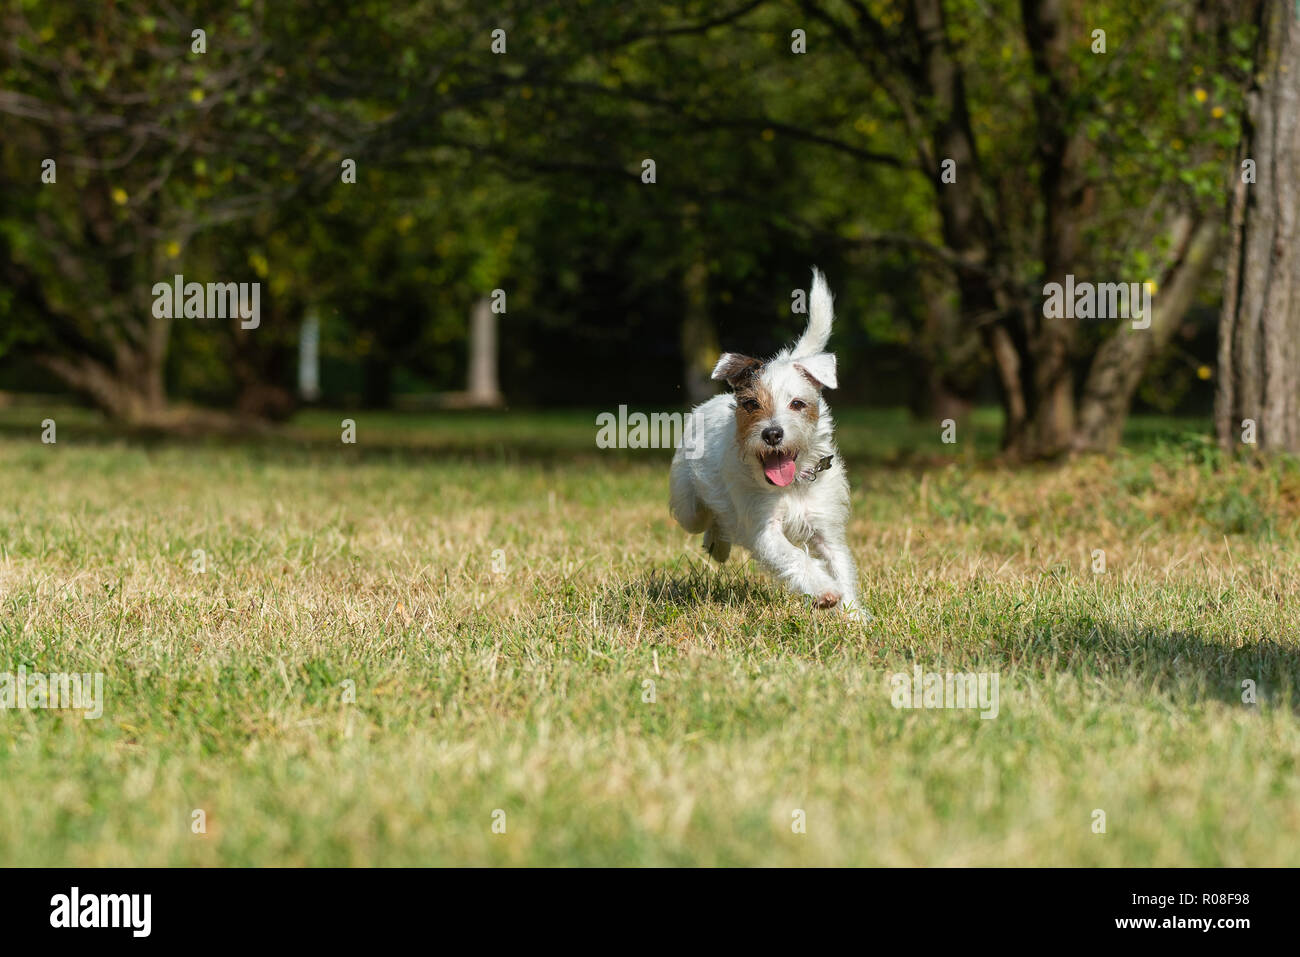 Parson Russell Terrier running very fast in a city park - Stock Image